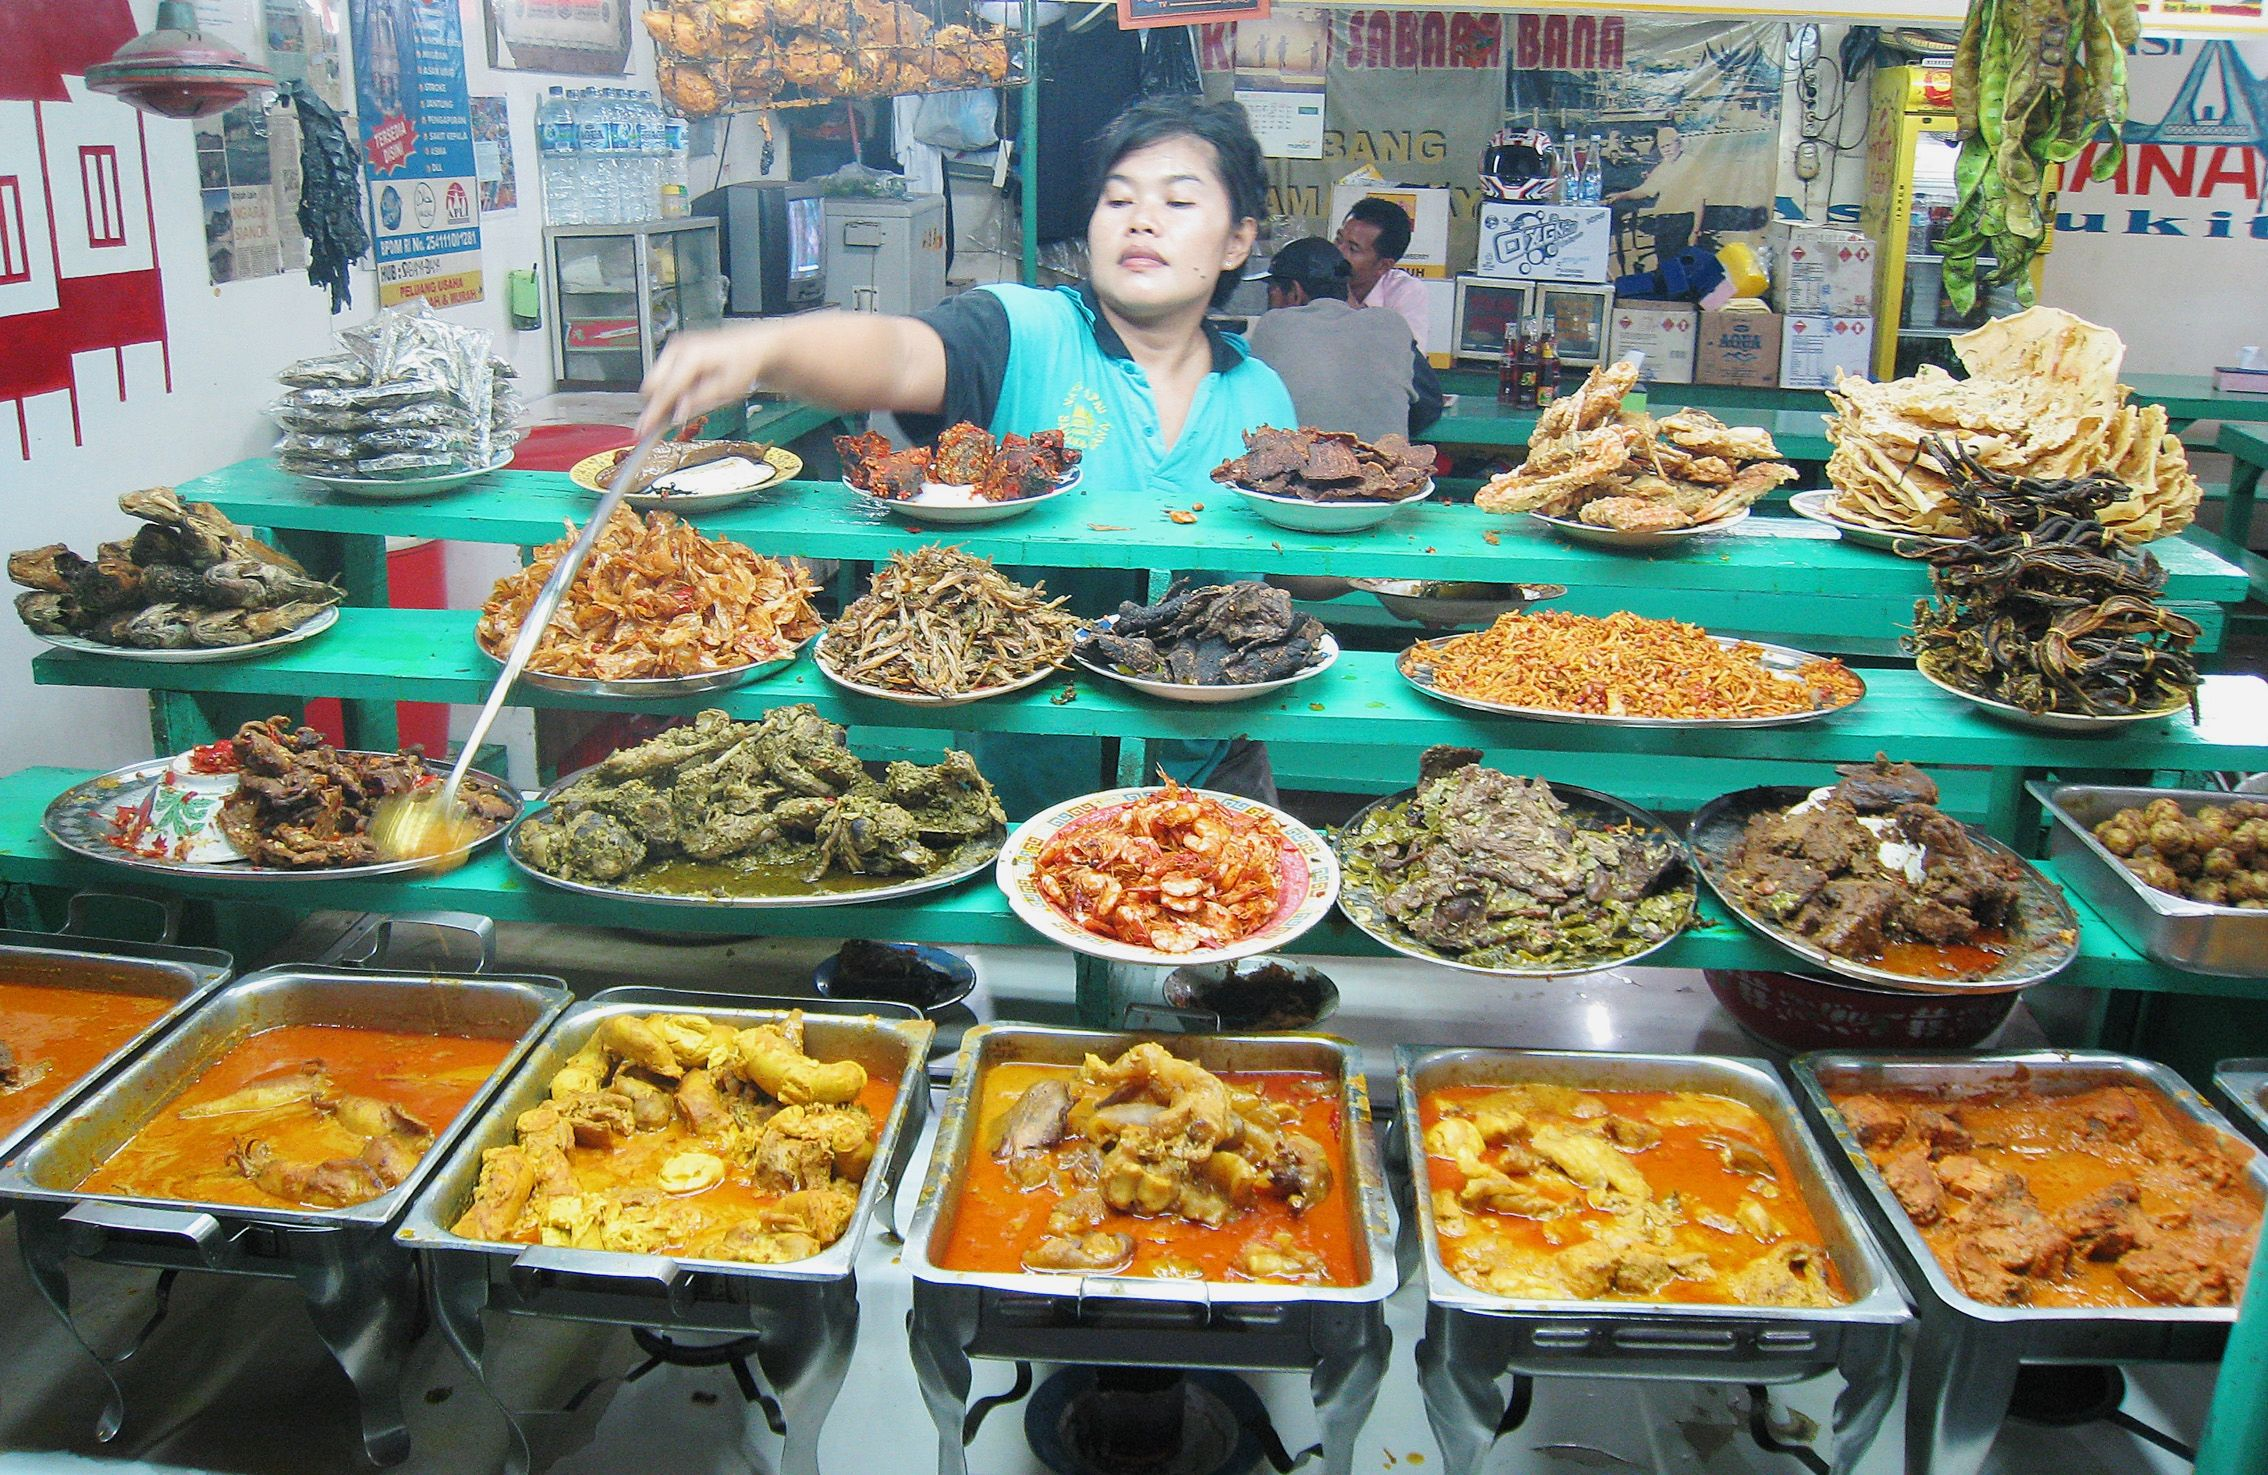 Indonesia Food Information On Our Site Https Storelatina Com Indonesia Recipes 공화국 Yndoneezje Indonezh Asian Street Food Indonesian Cuisine Street Food